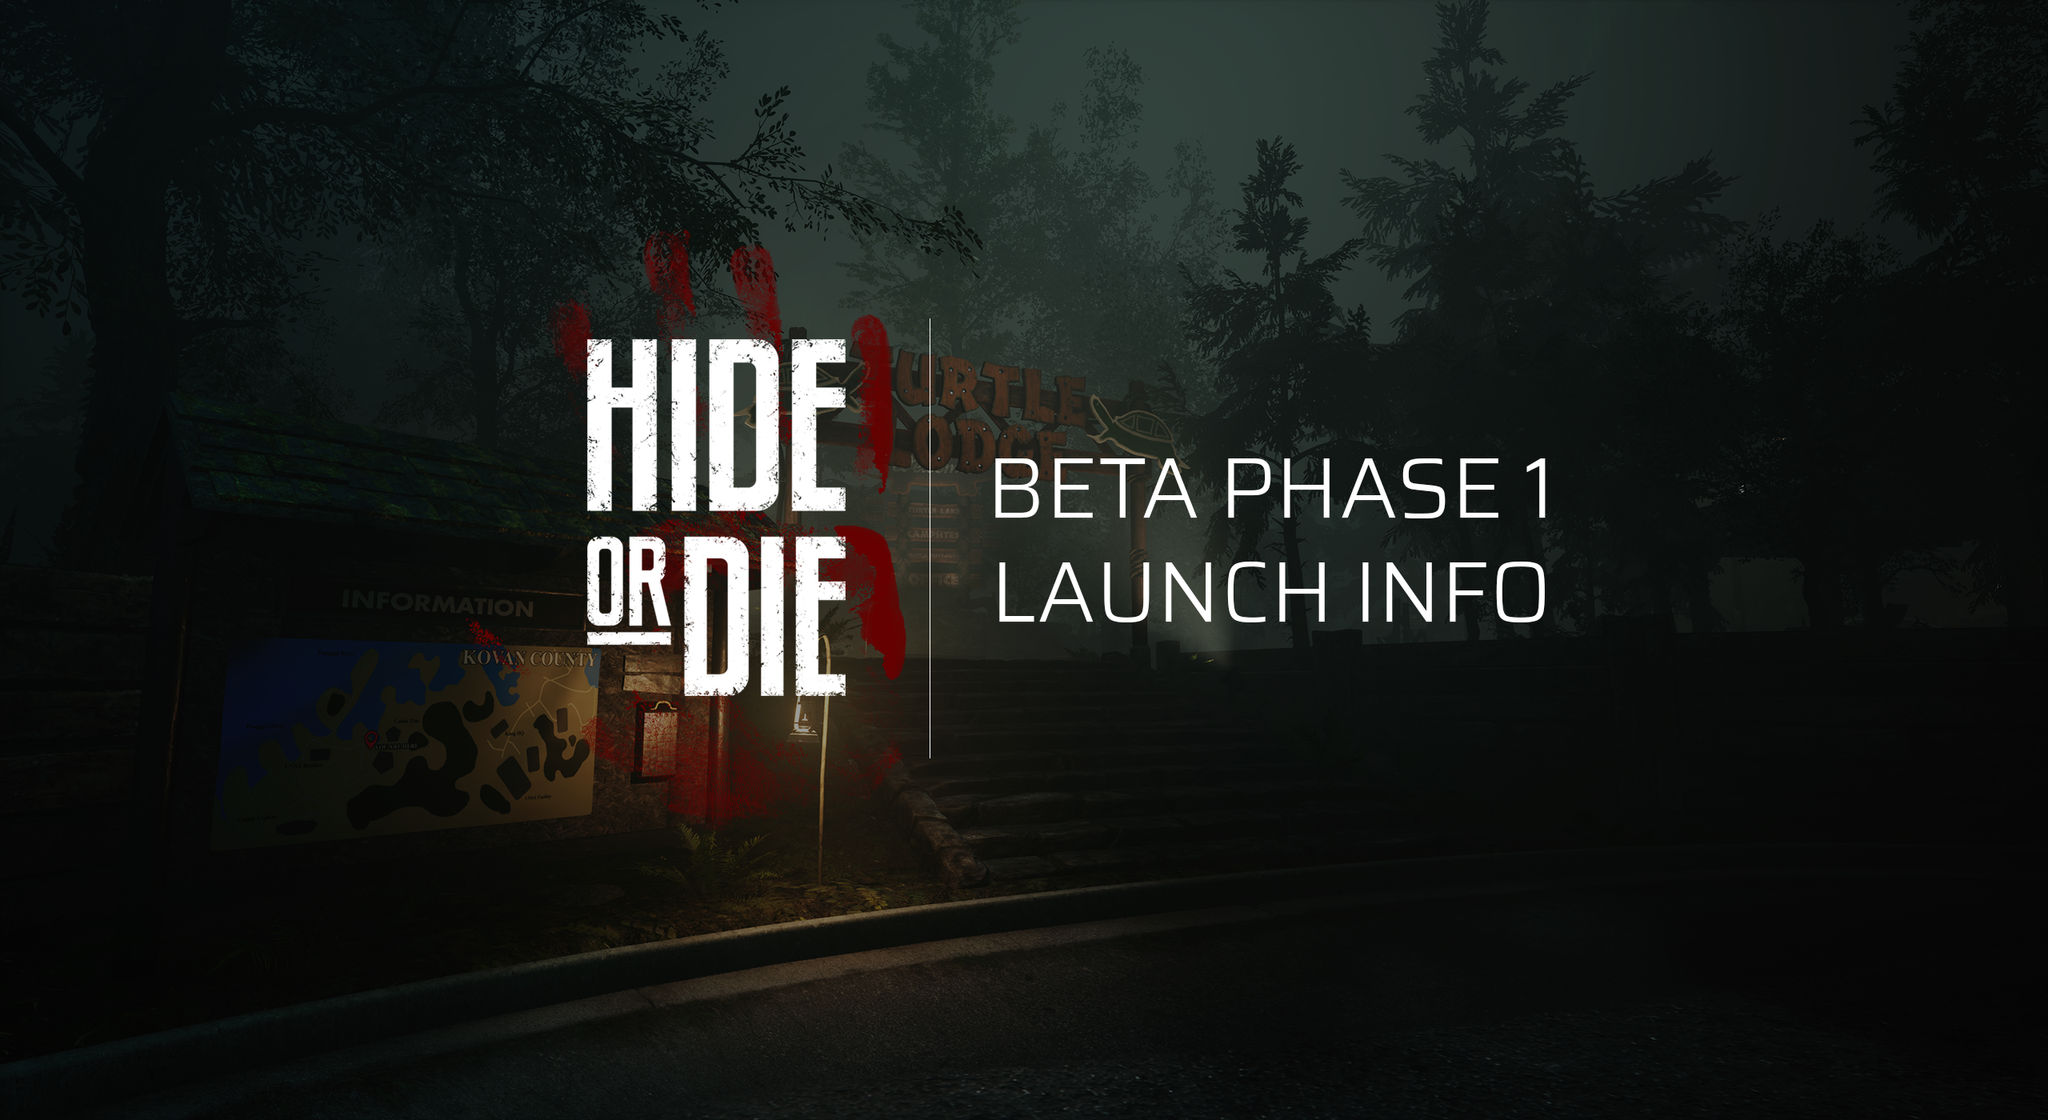 Hide Or Die Beta Phase 1 Launch Info Fuse Box